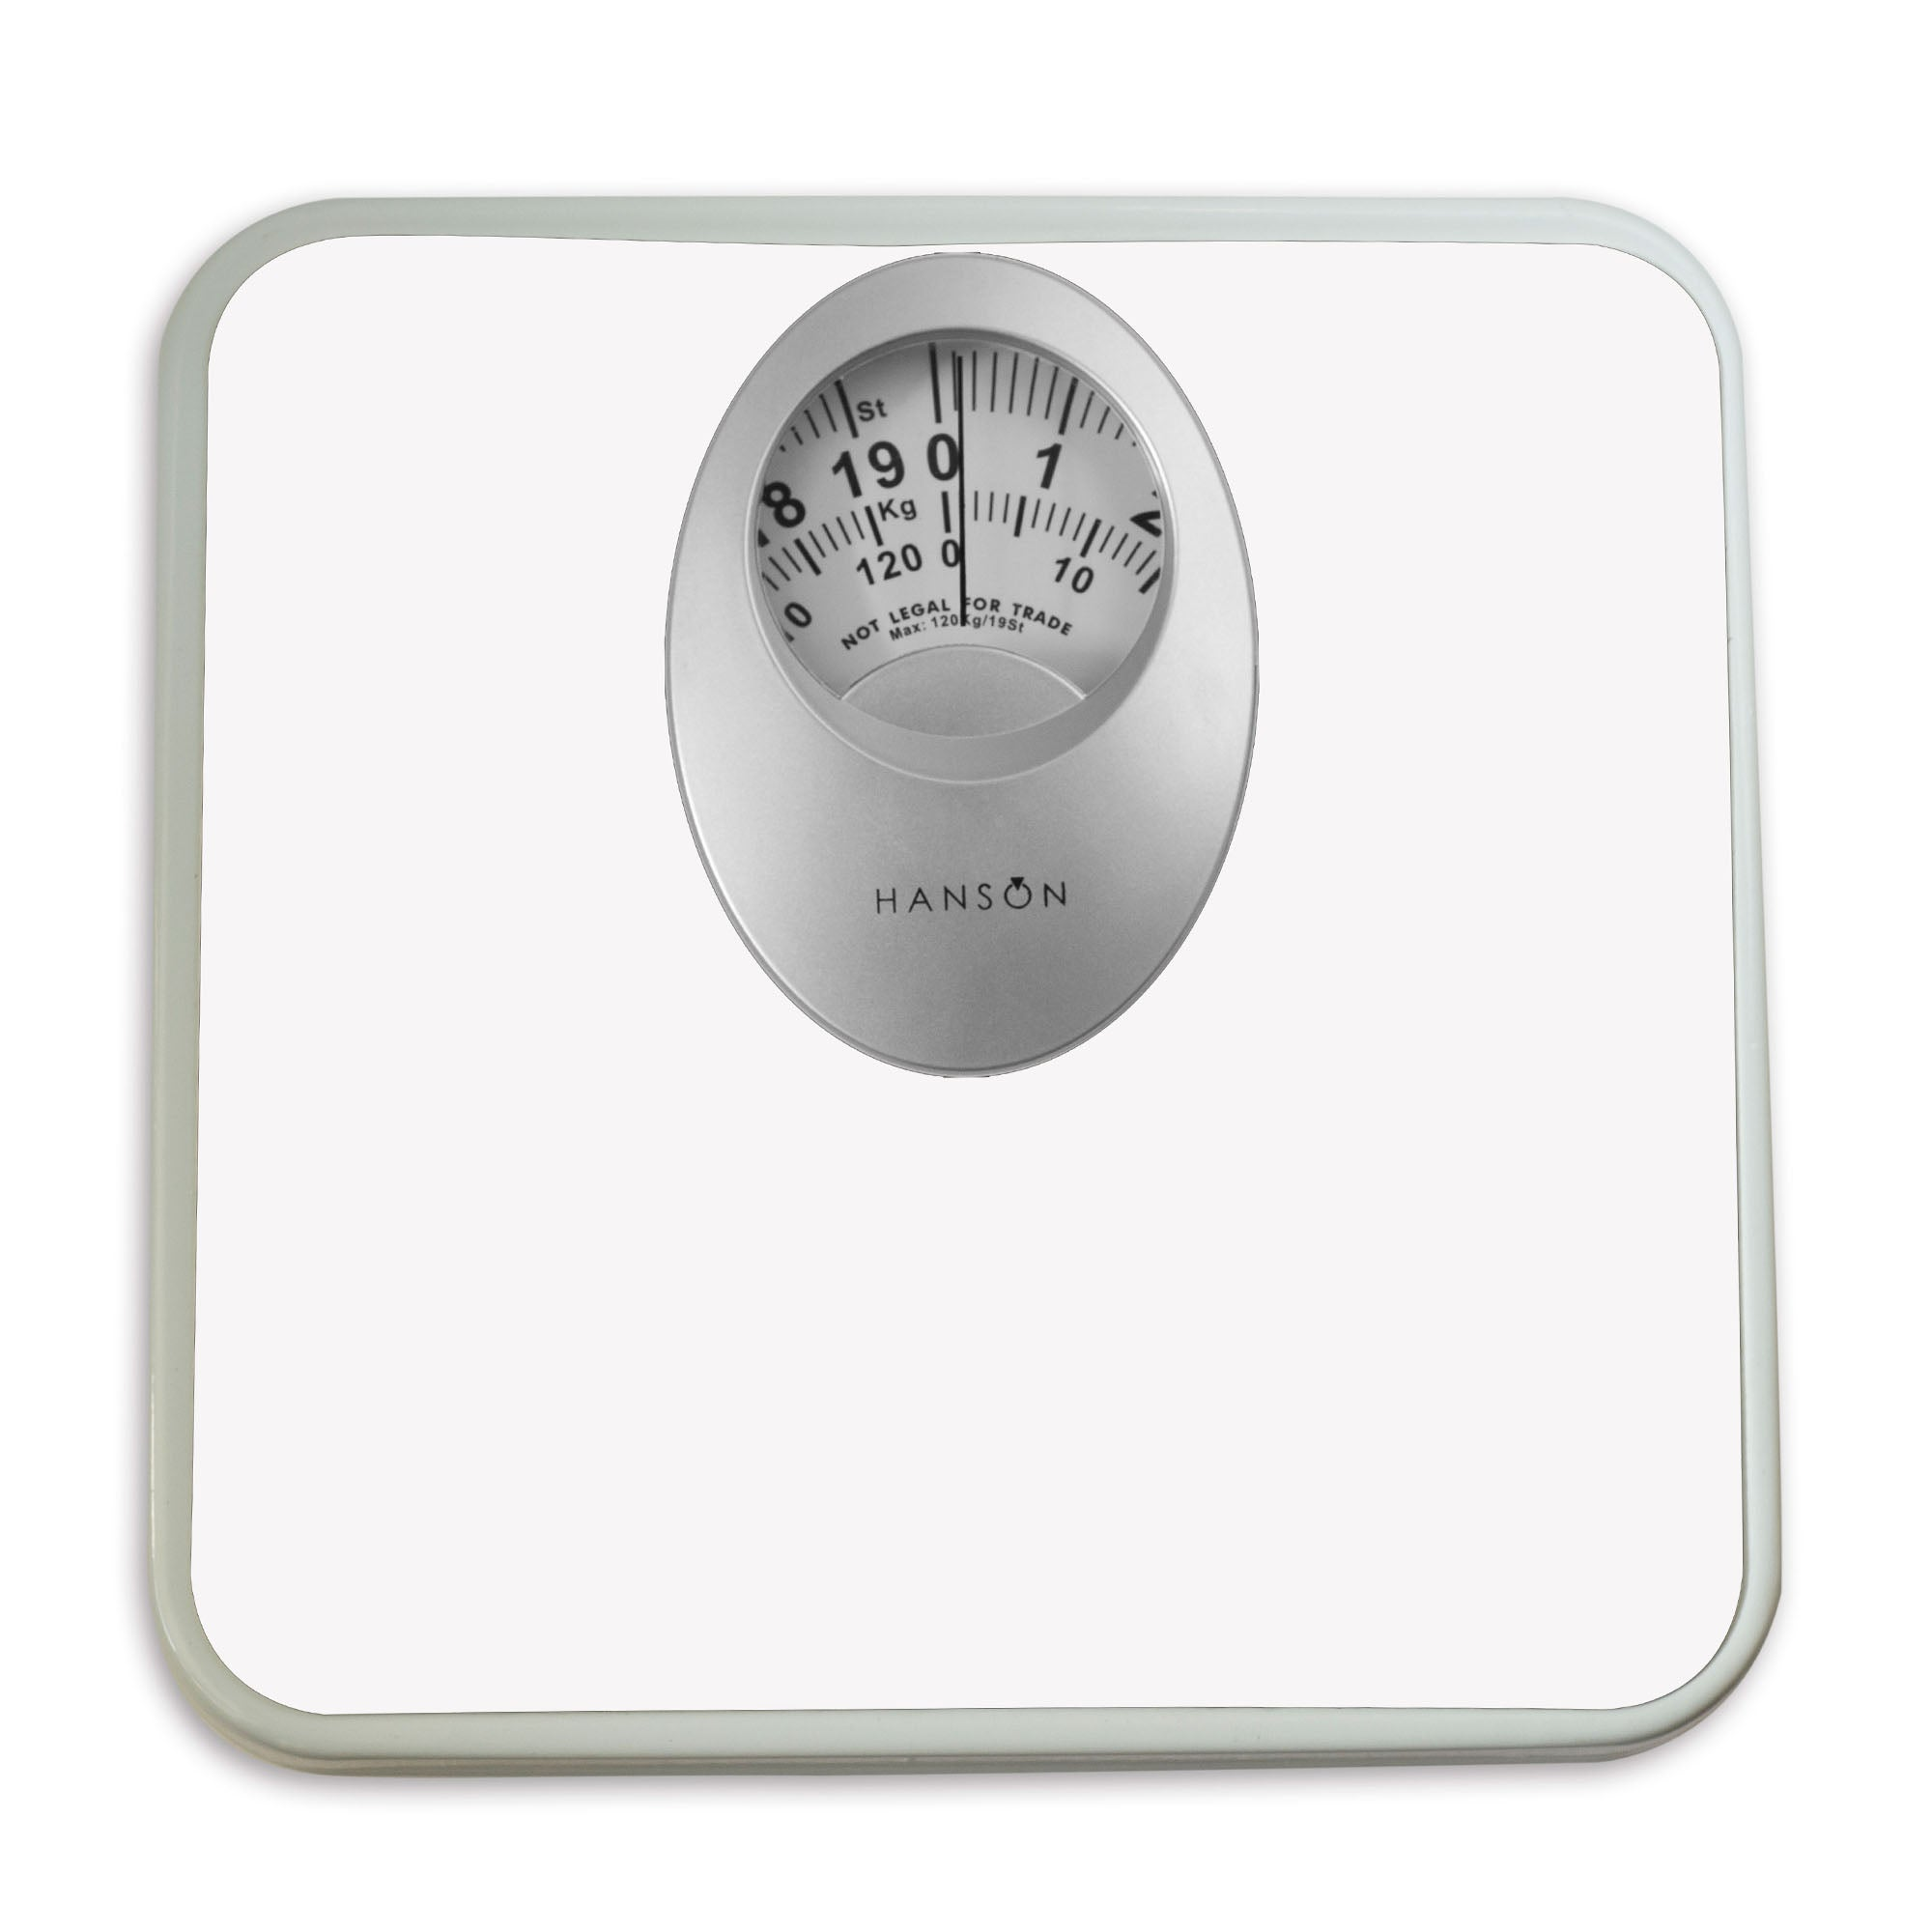 Image of Hanson H61 Mechanical Bathroom Scales White